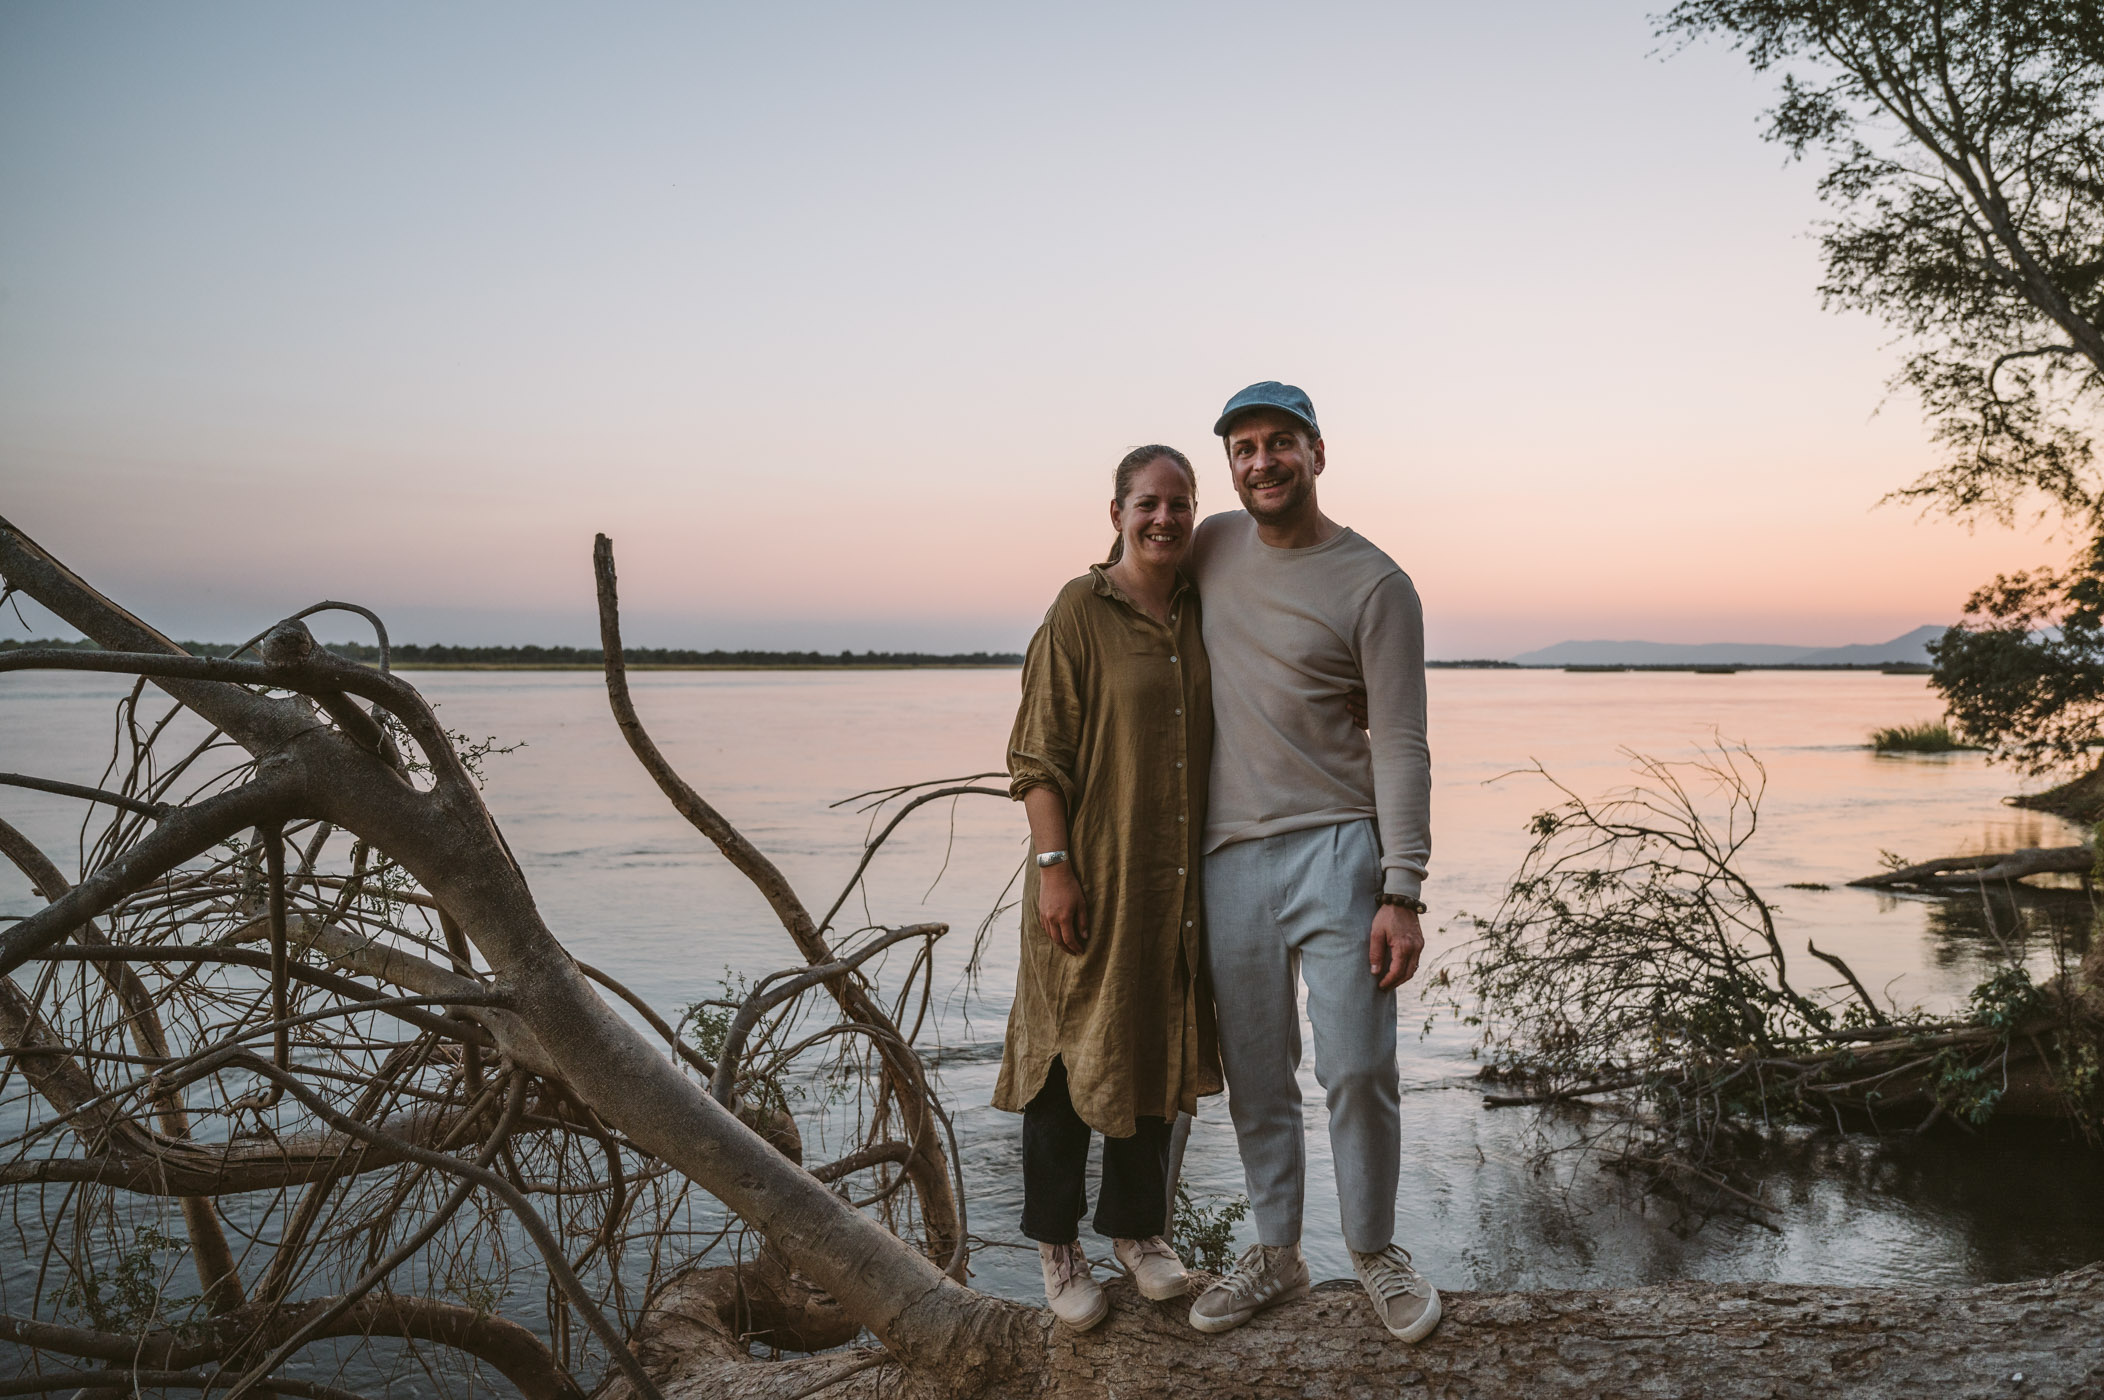 Marion & Raffael of thetravelblog.at in Zambia